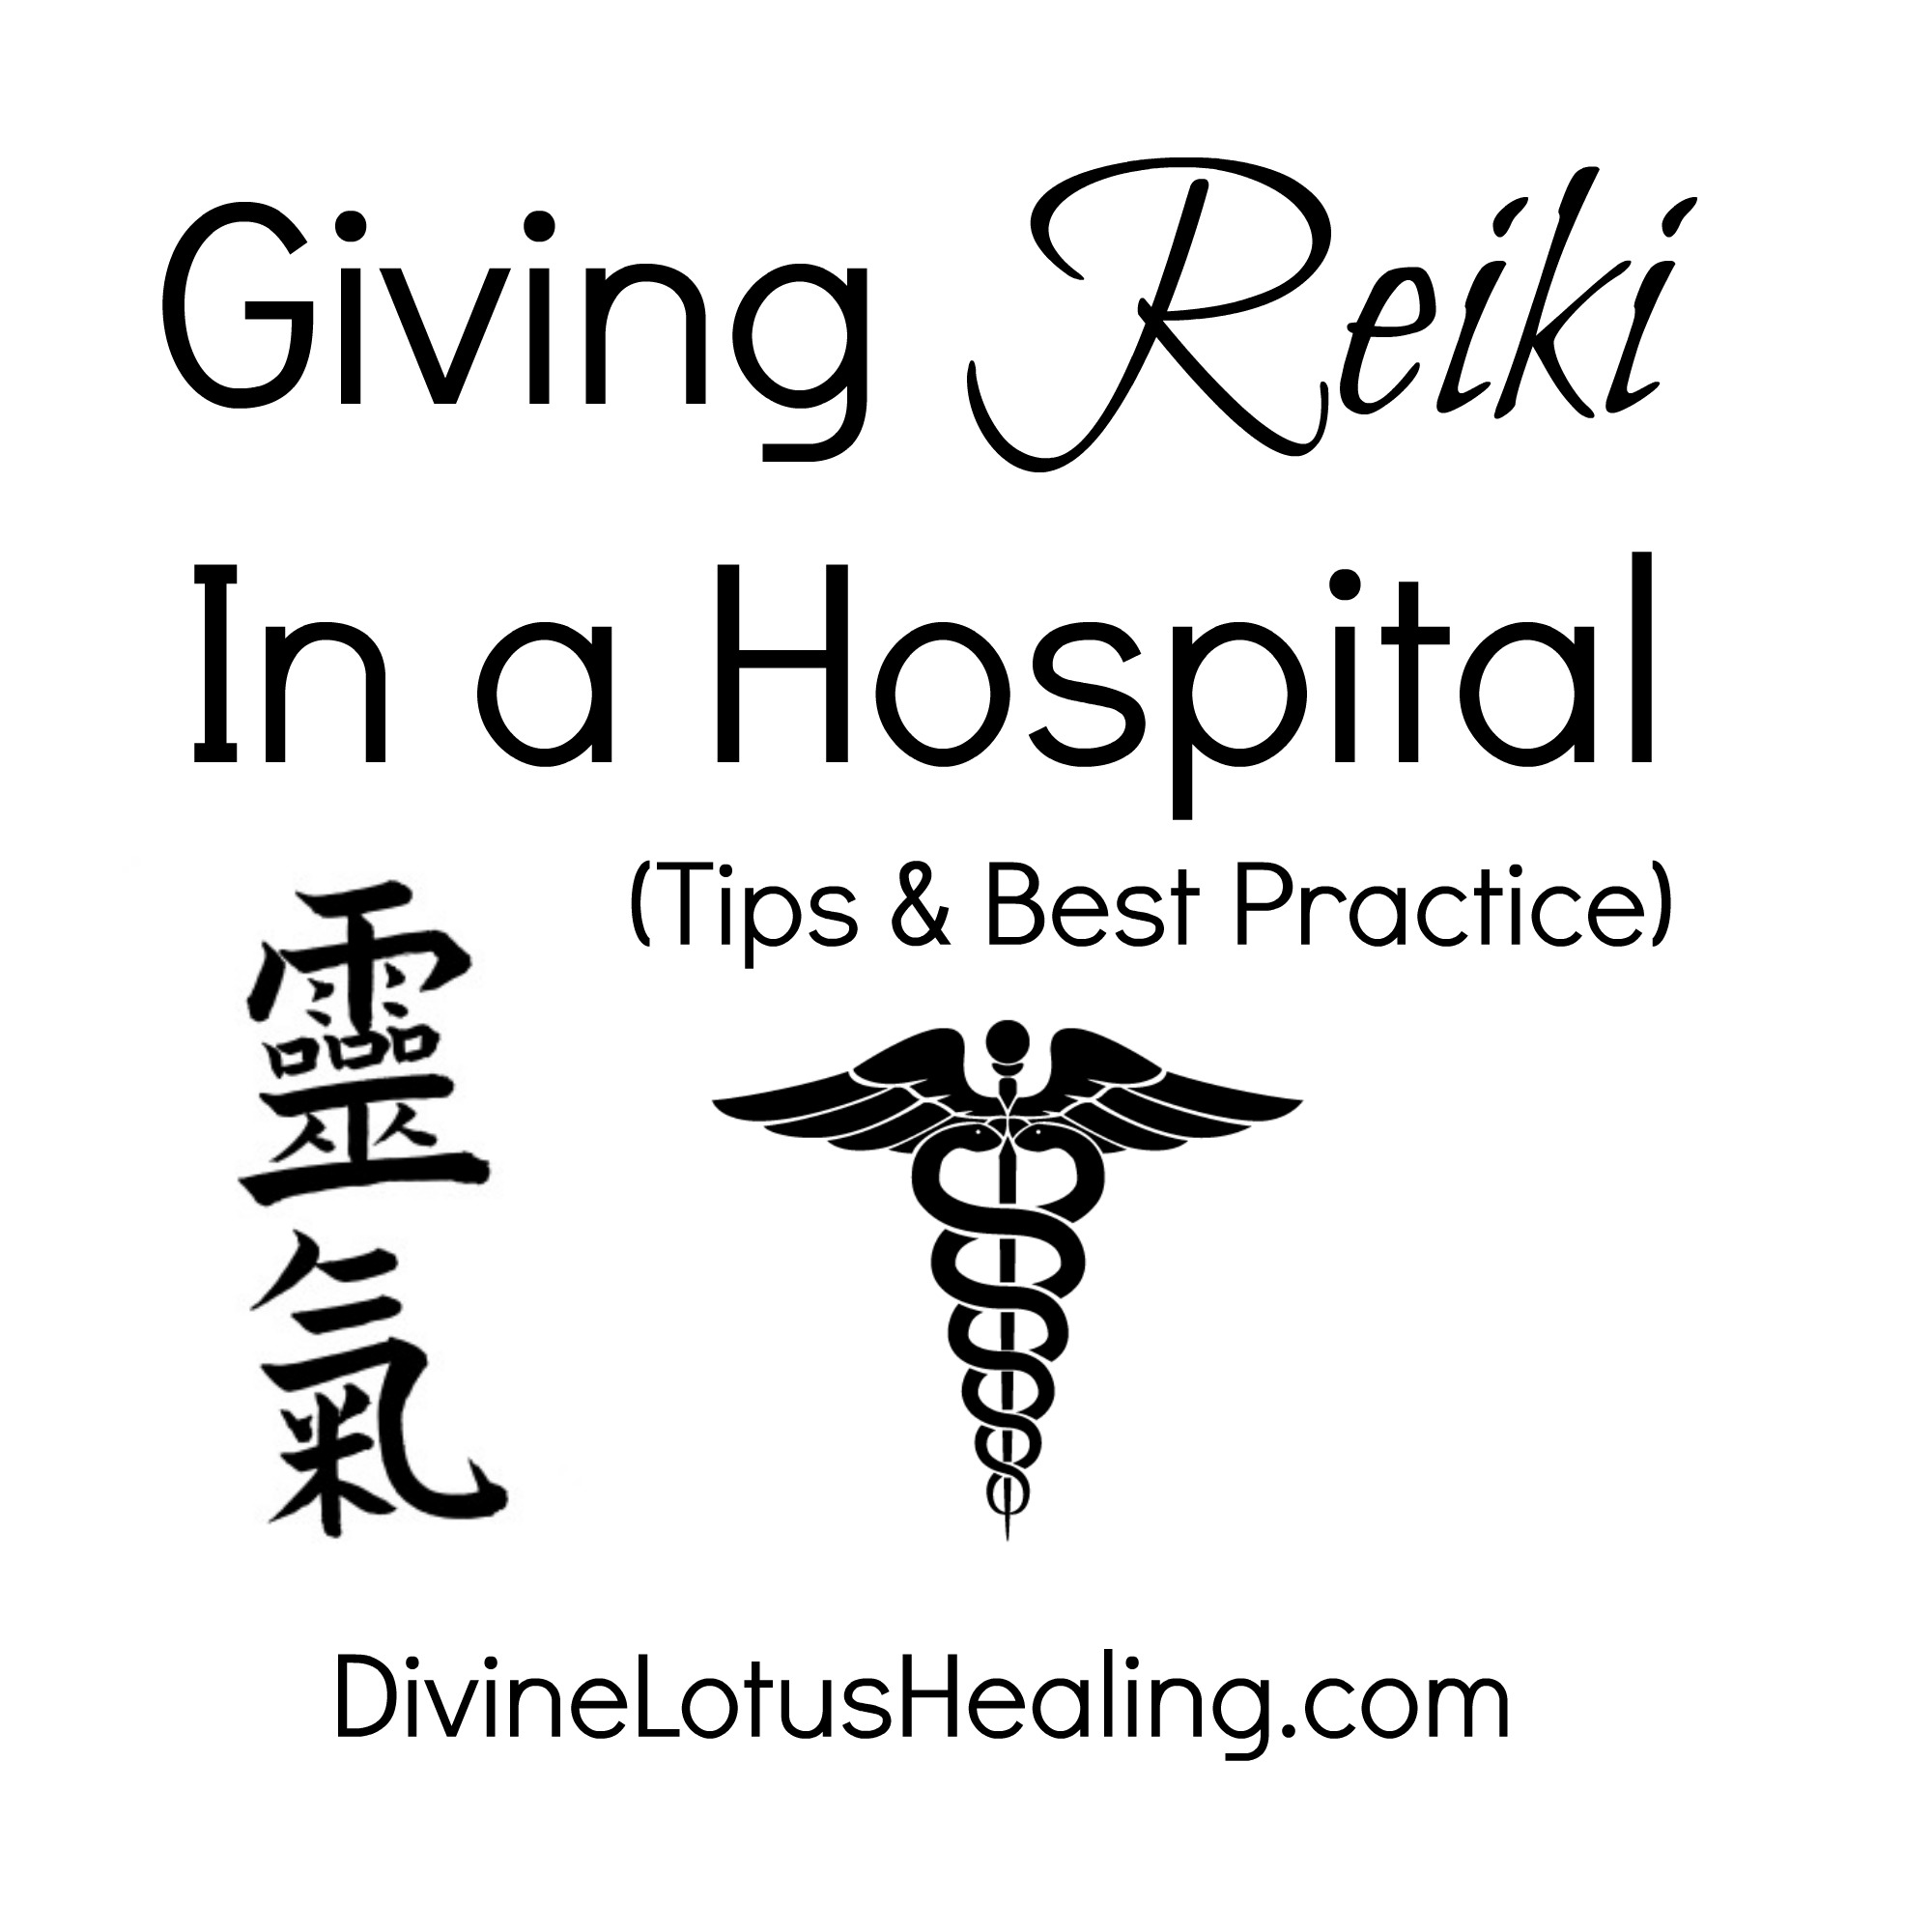 Divine Lotus Healing Giving Reiki in a Hospital